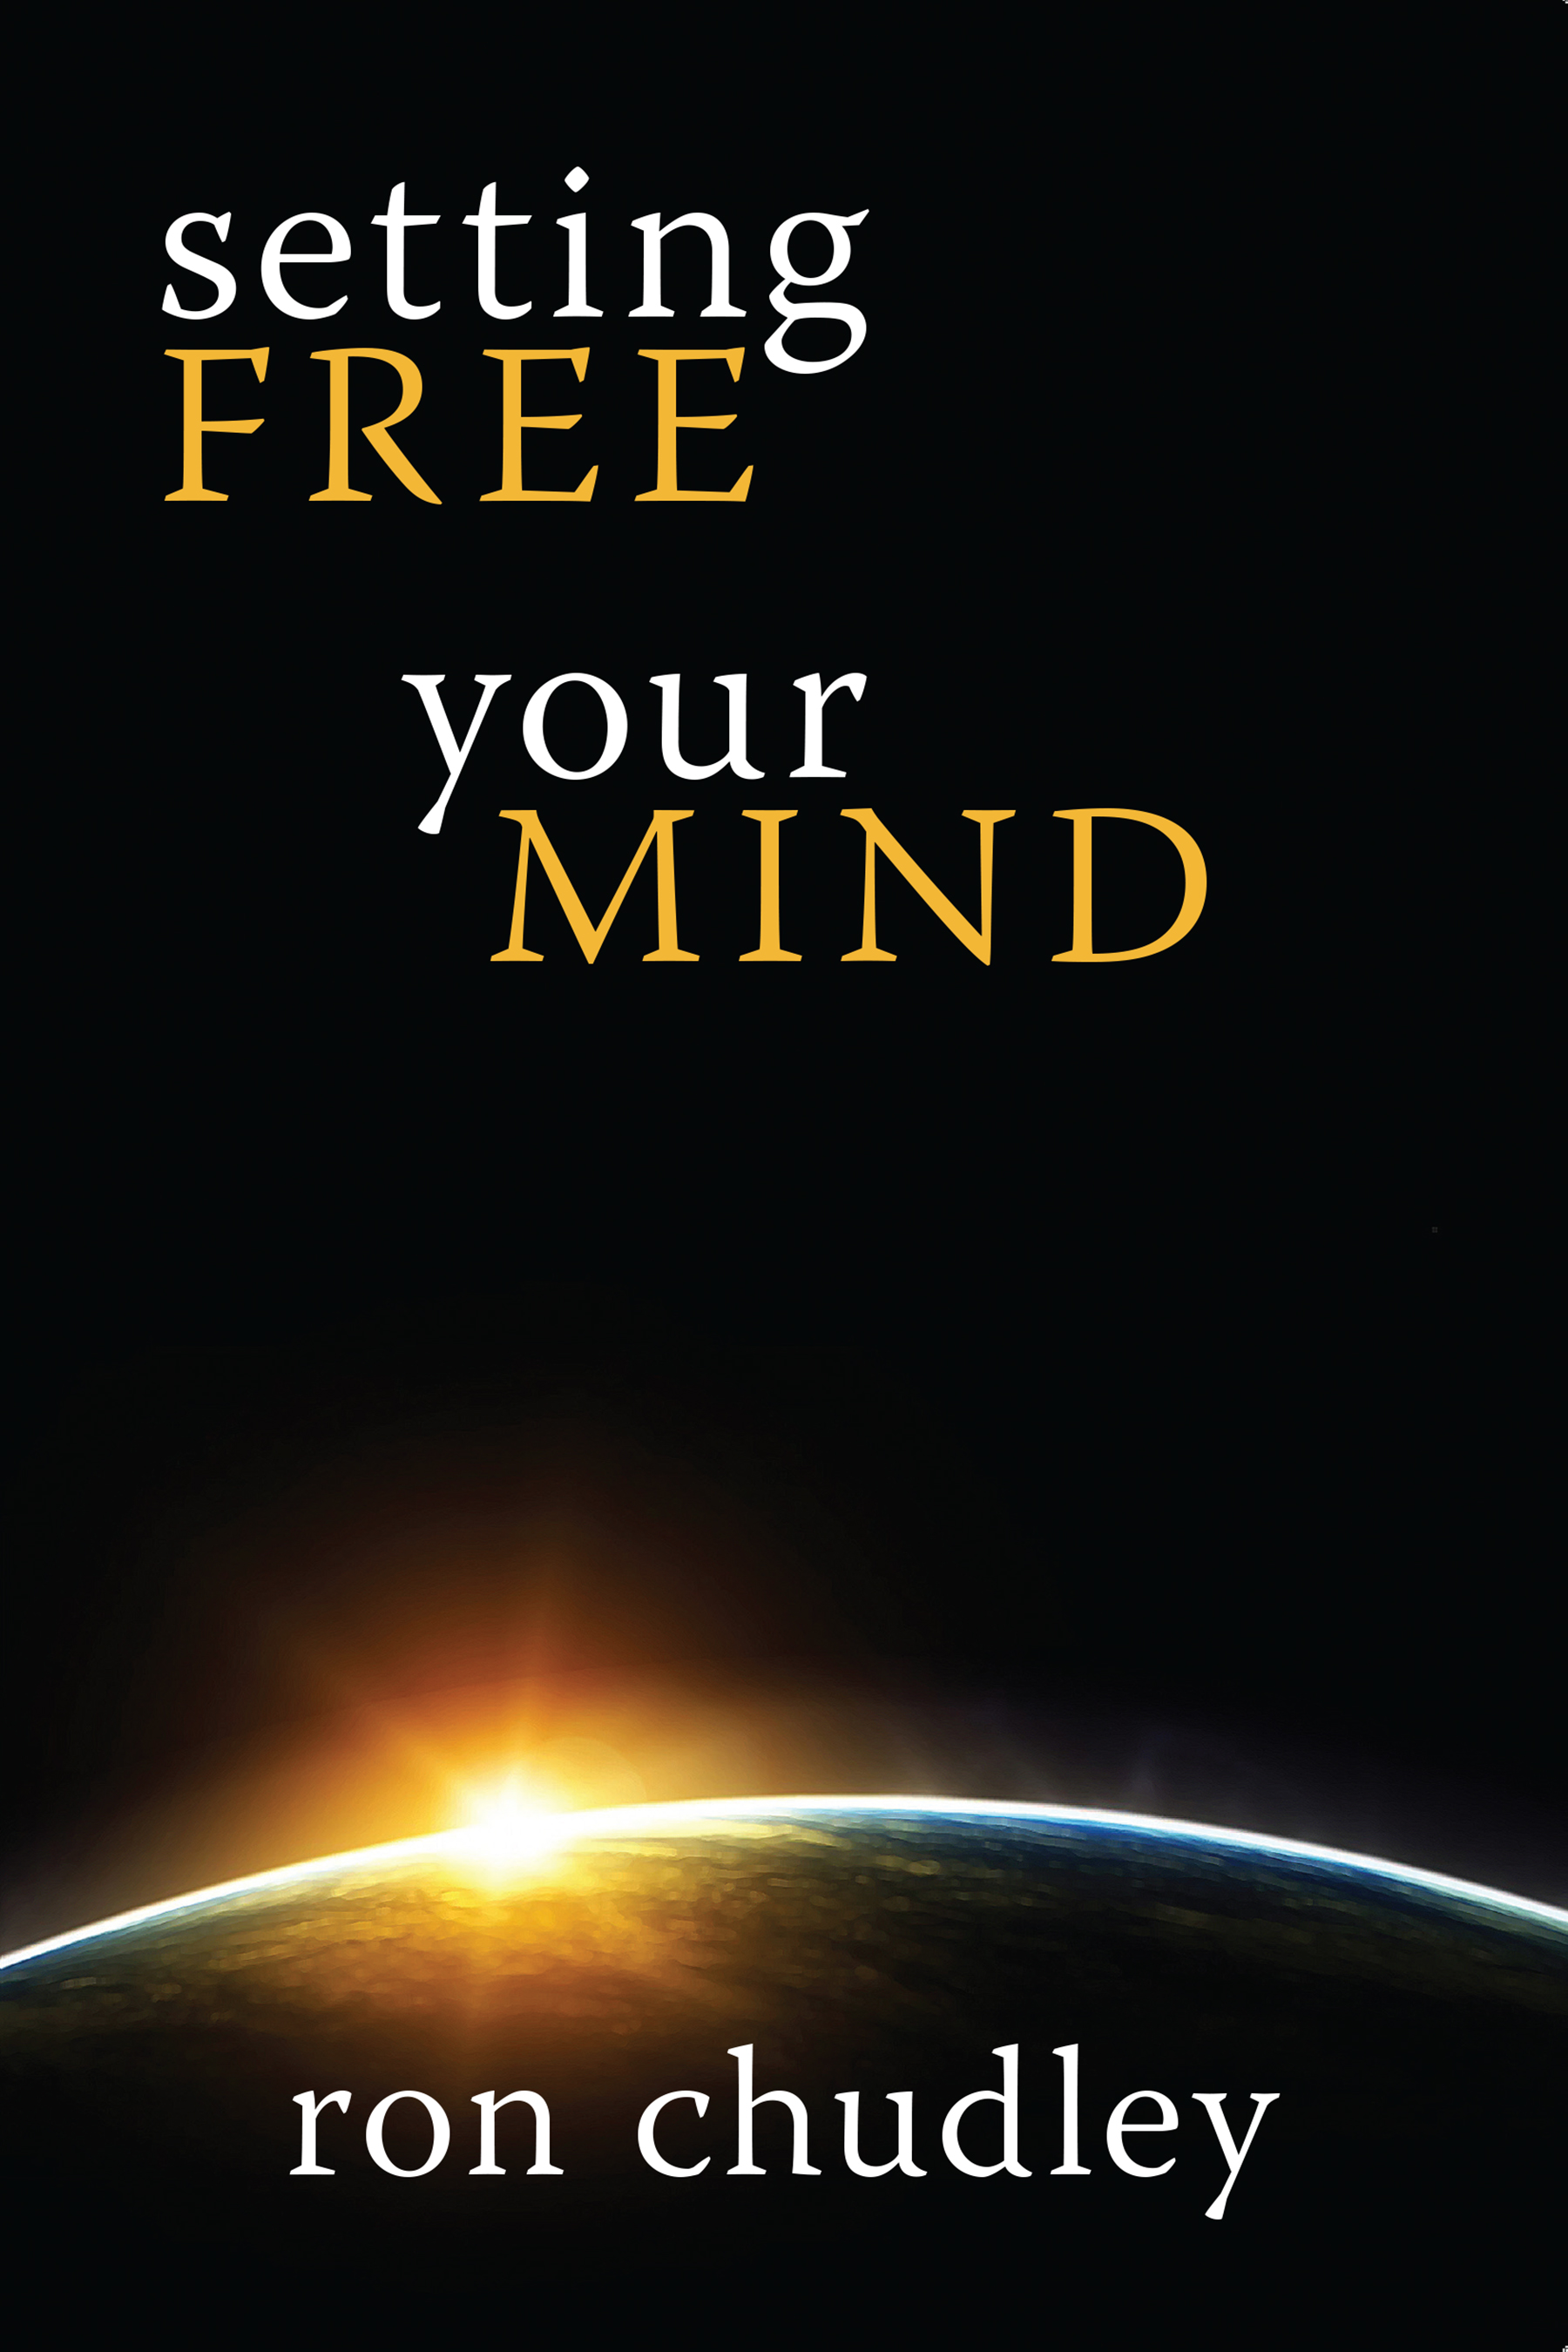 Setting Free Your Mind by Ron Chudley